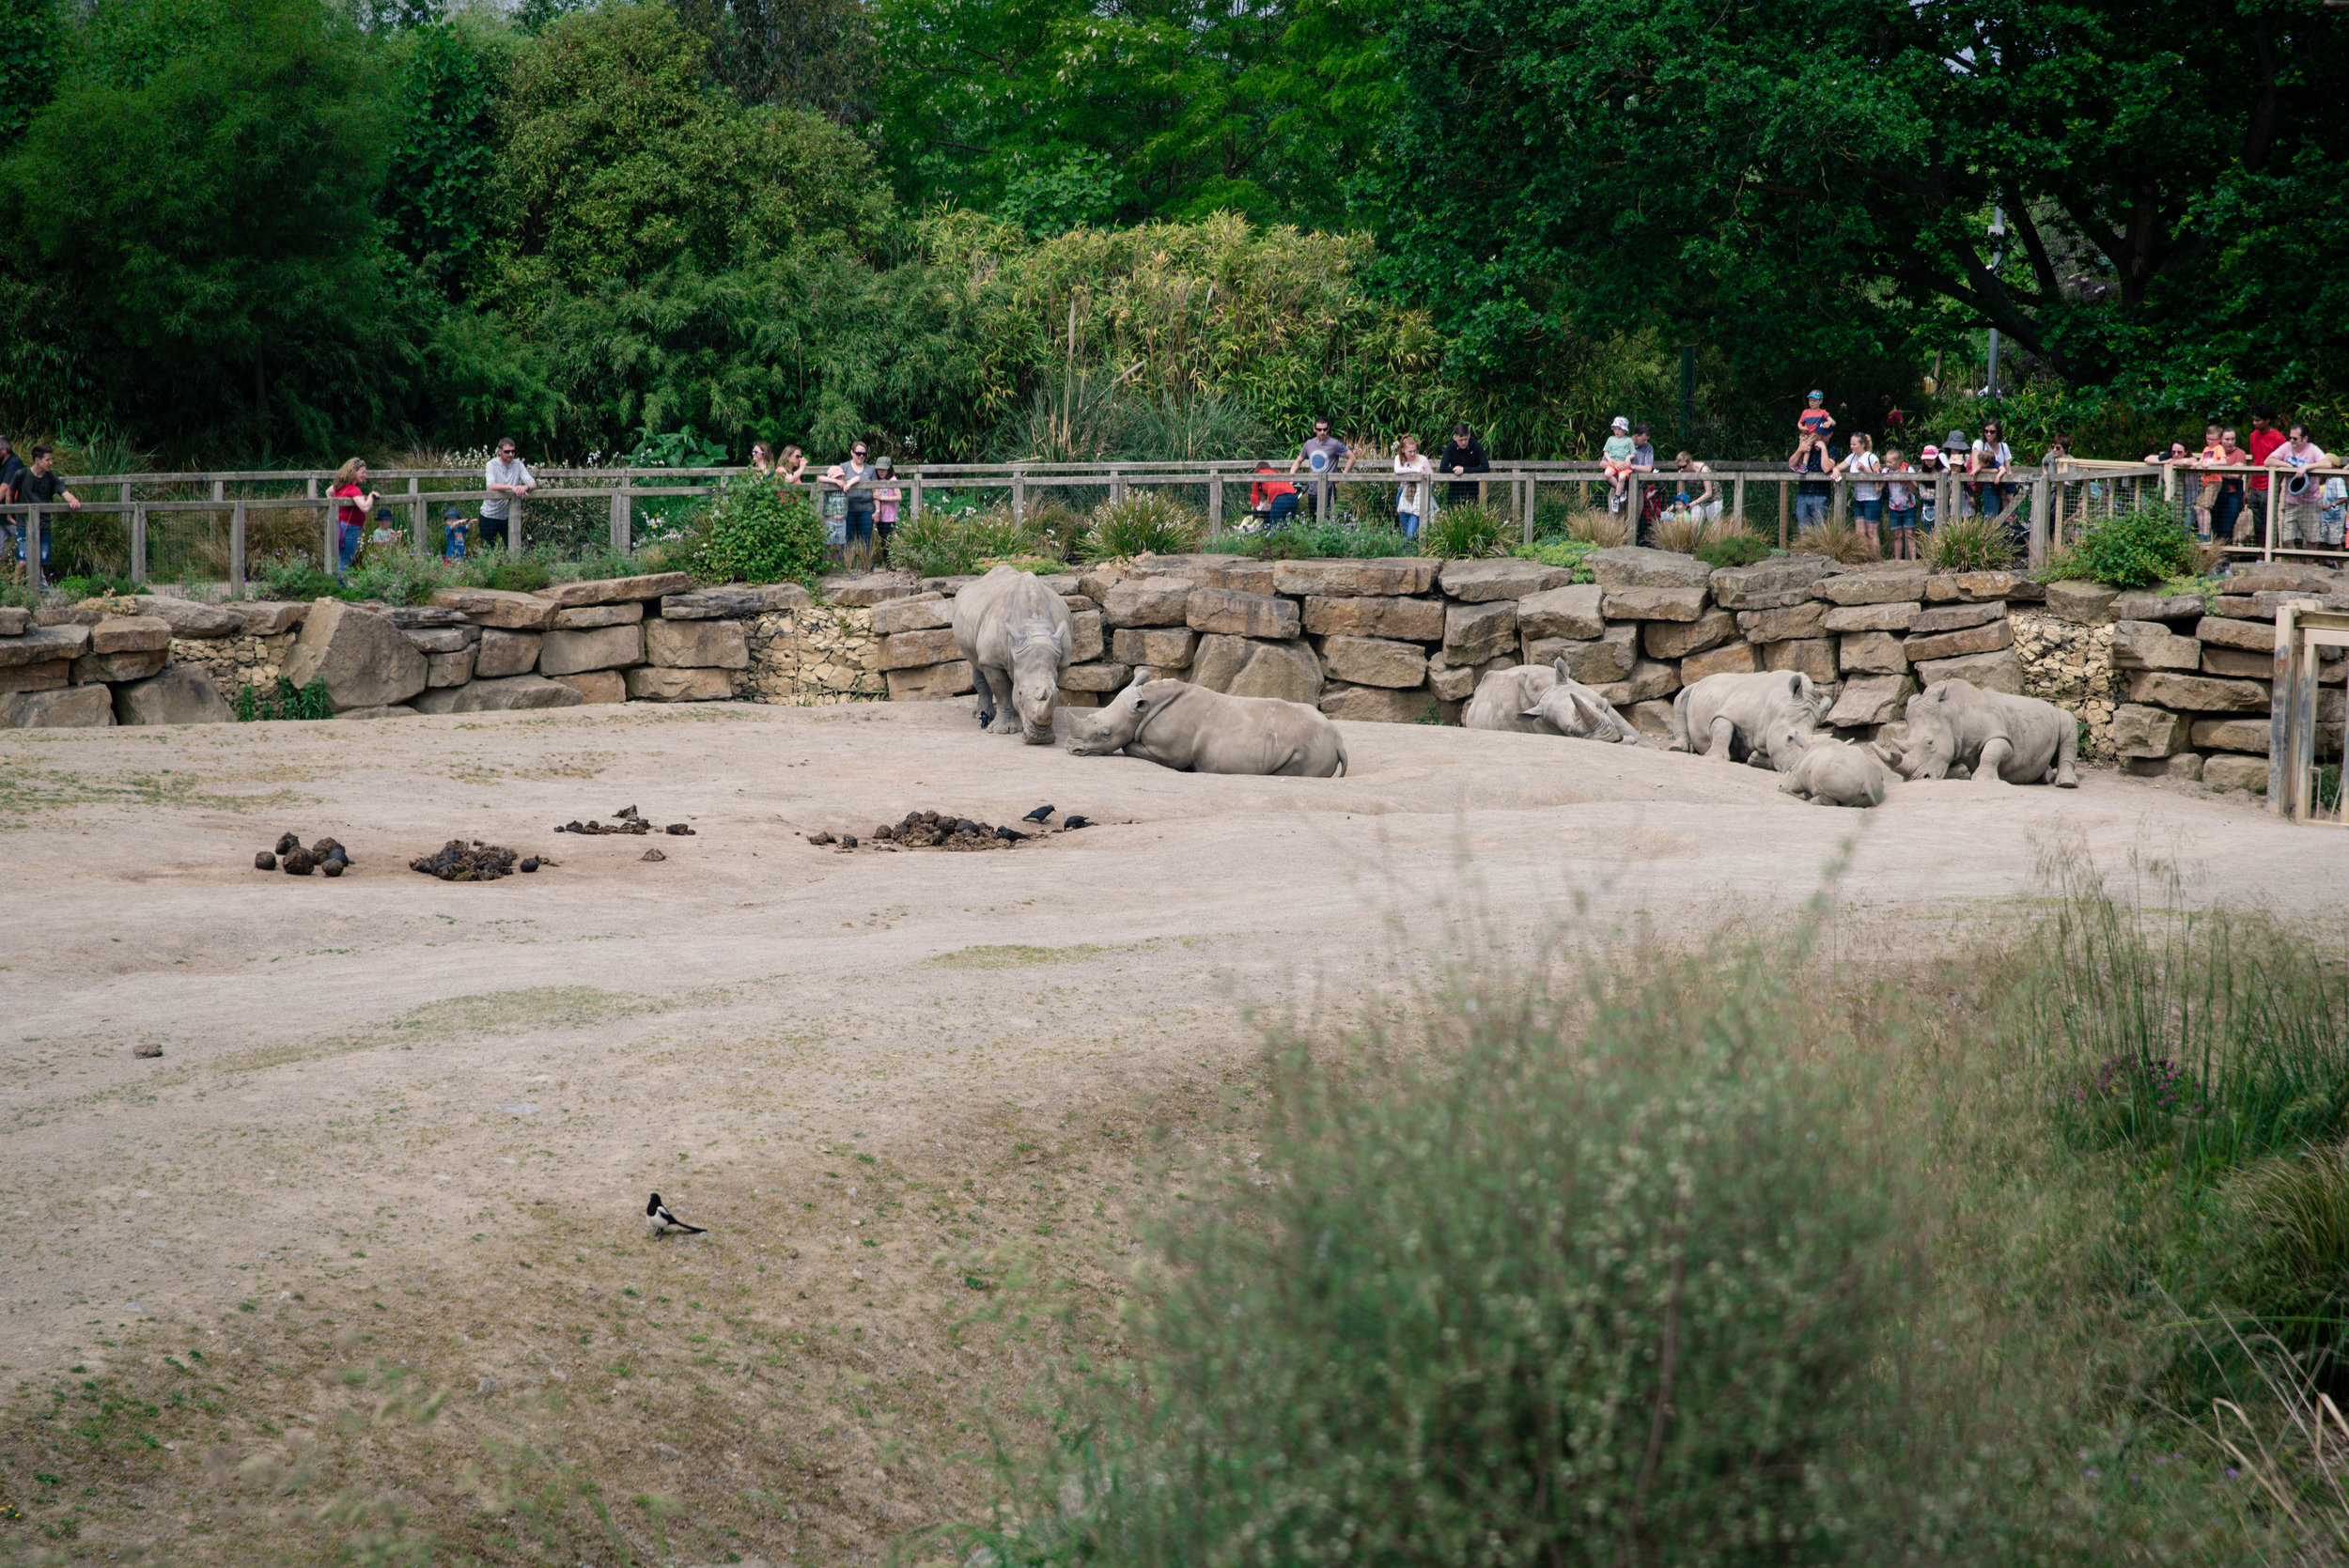 The Rinos were all snoozing as I walked around the enclosure.